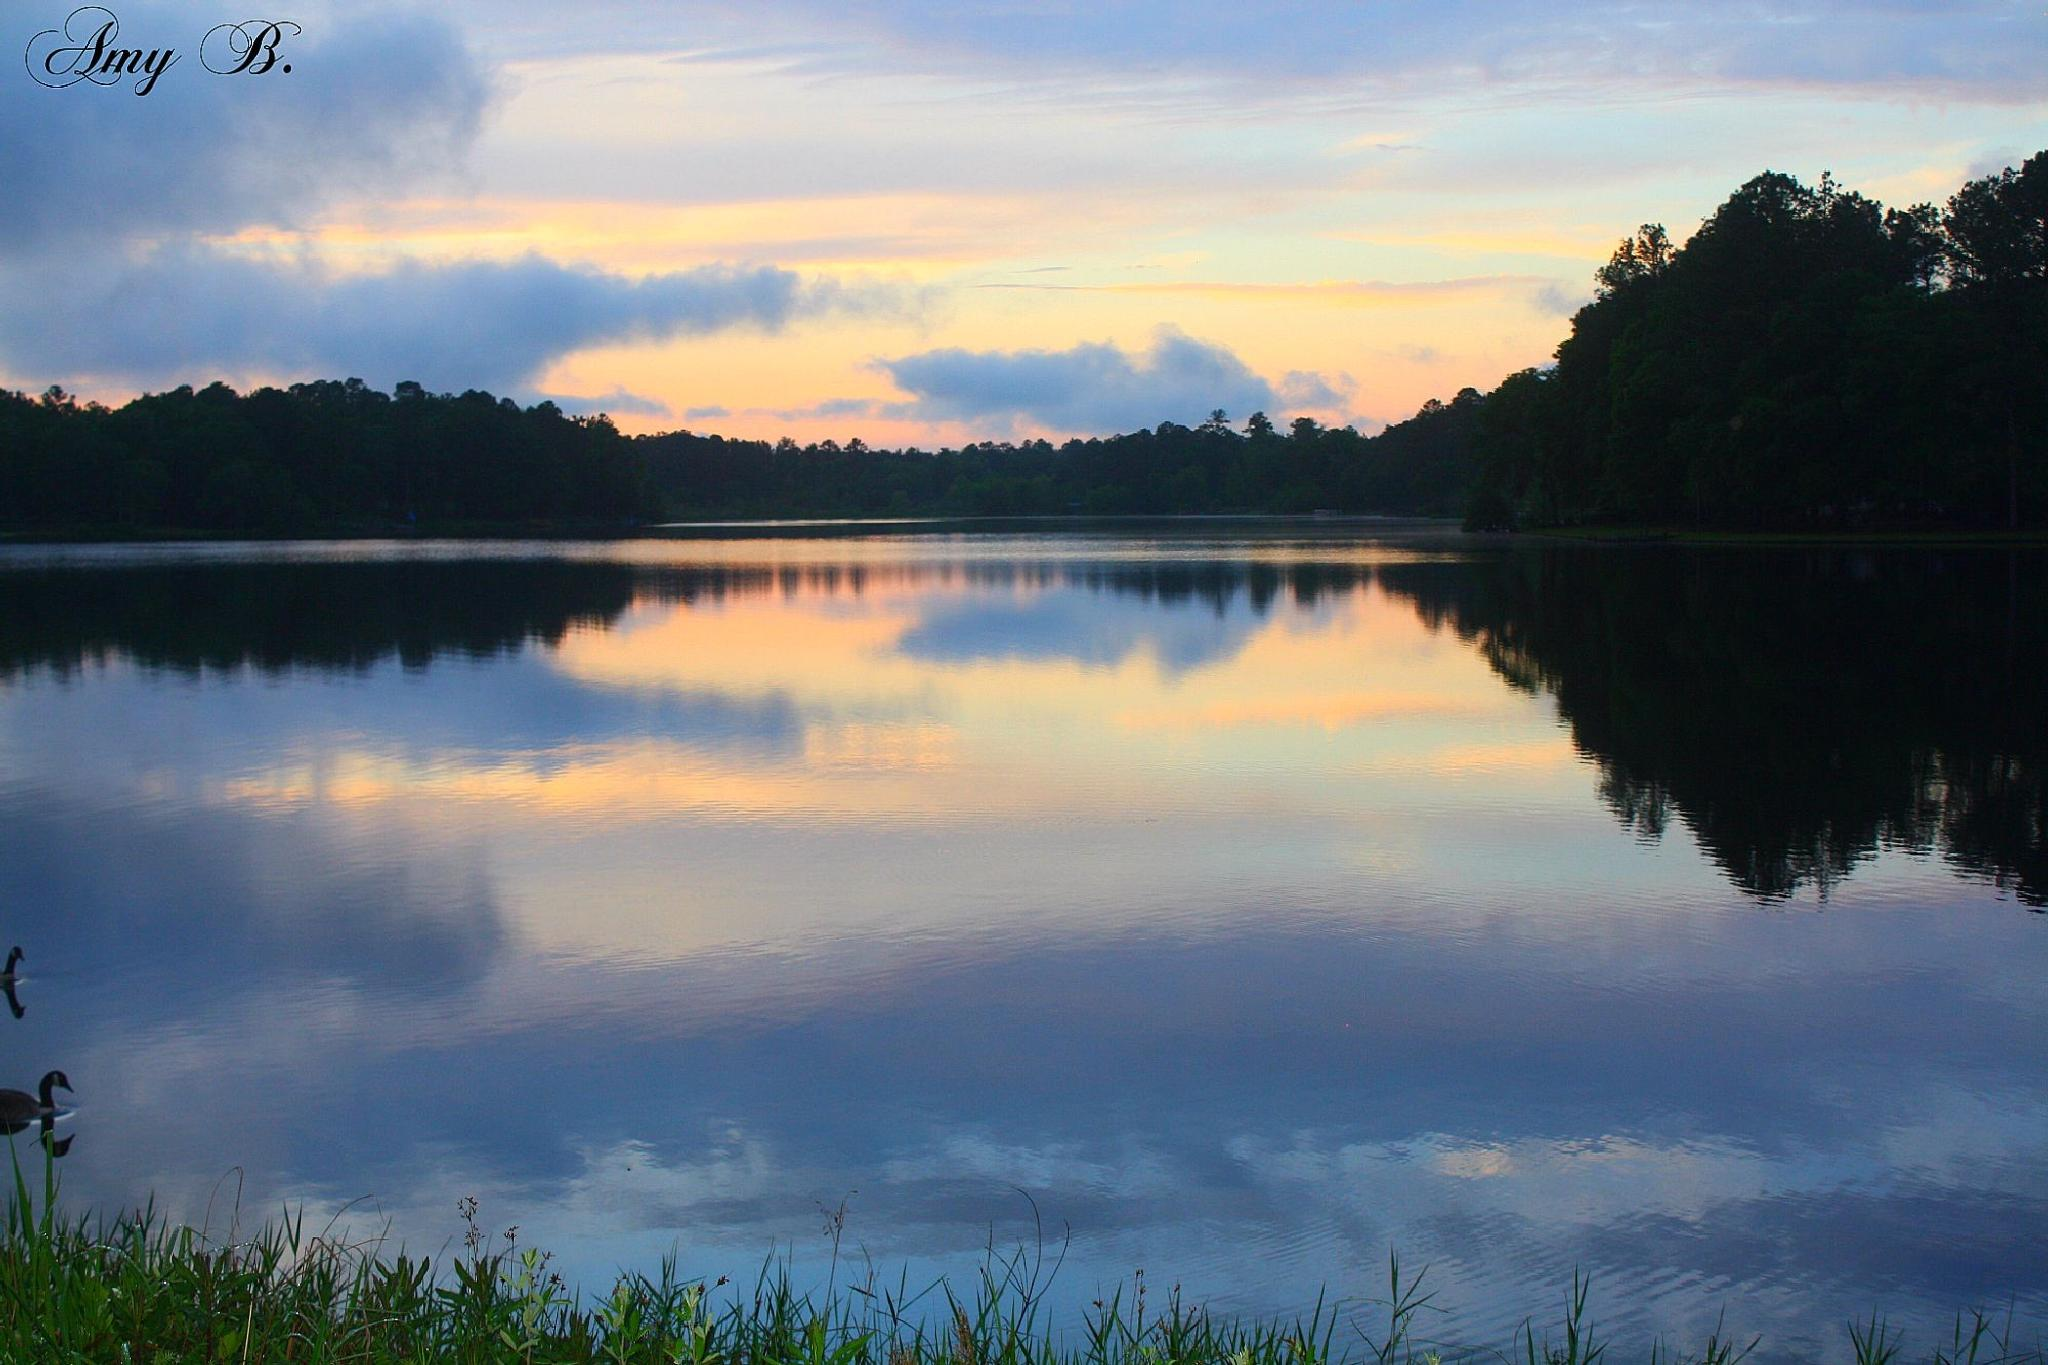 Blue sky reflected in lake by amy.conger.9